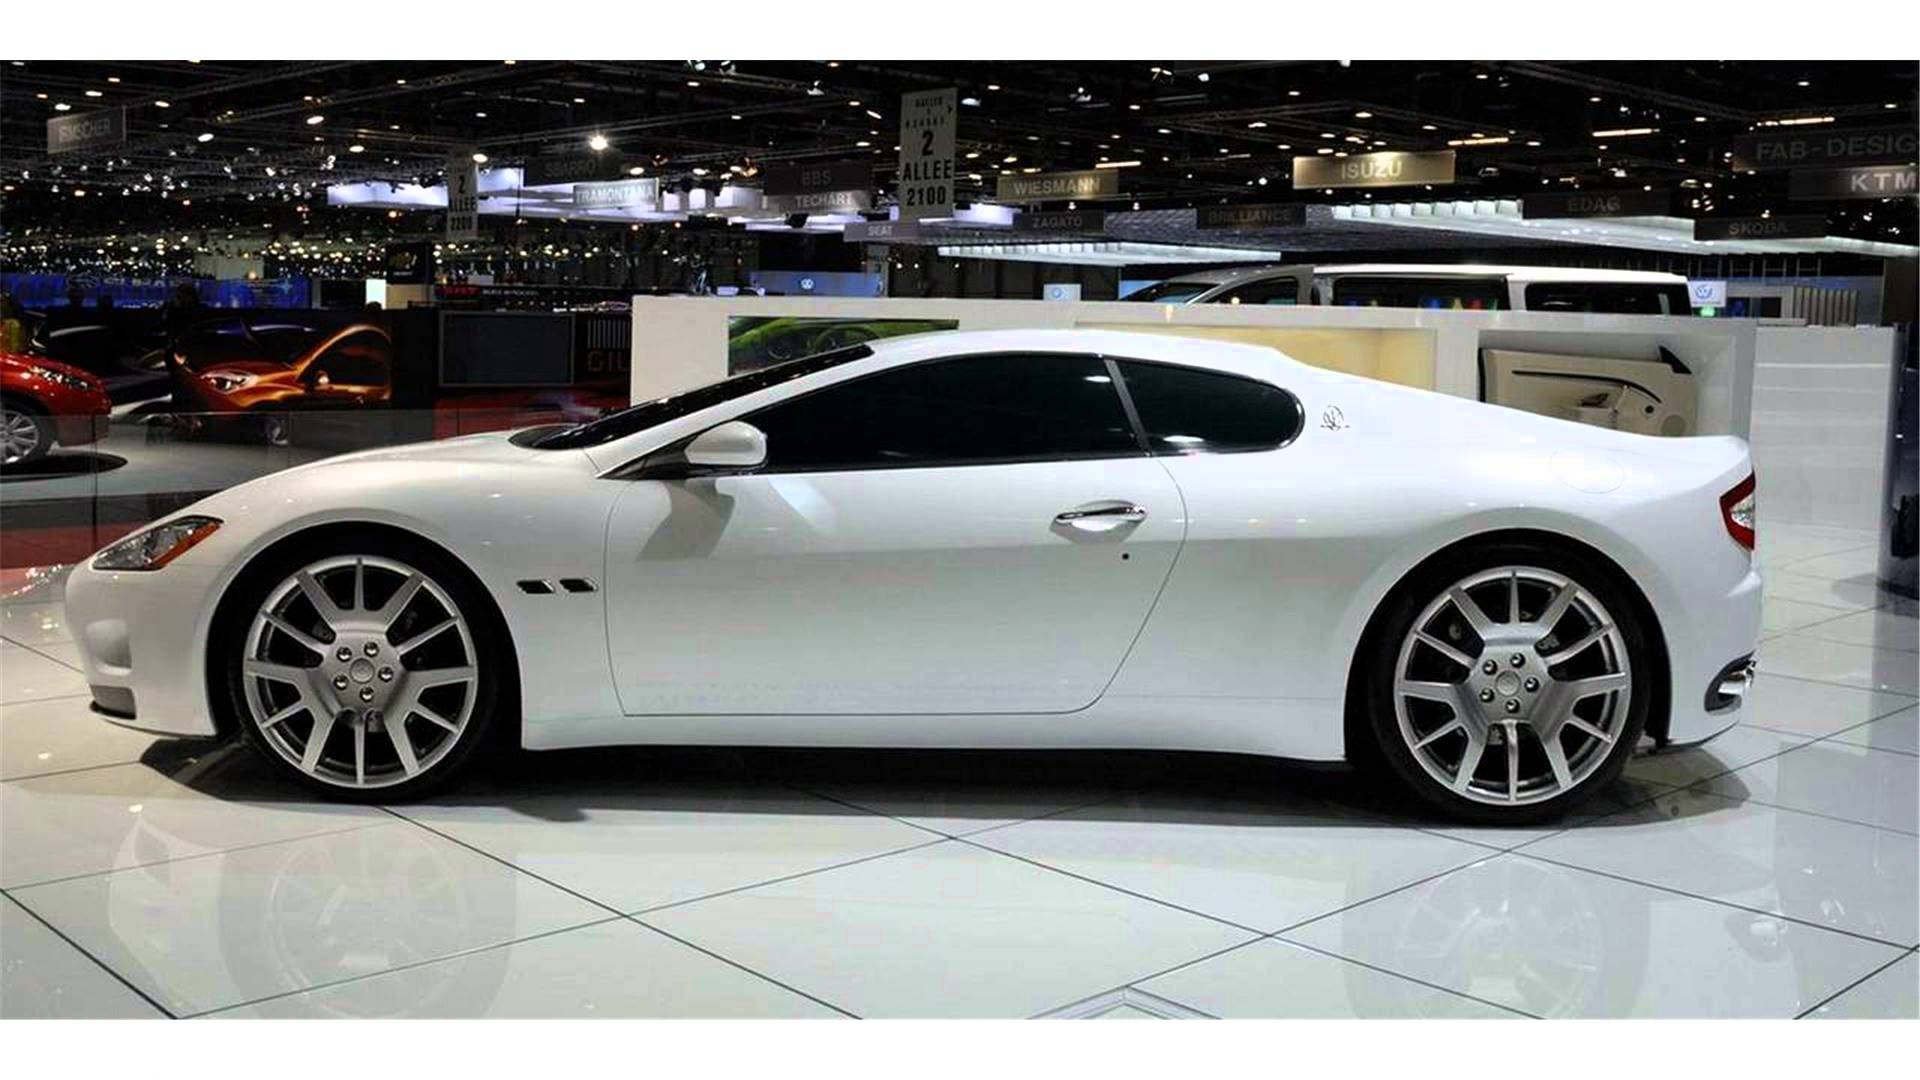 2015 maserati granturismo information and photos zombiedrive. Black Bedroom Furniture Sets. Home Design Ideas